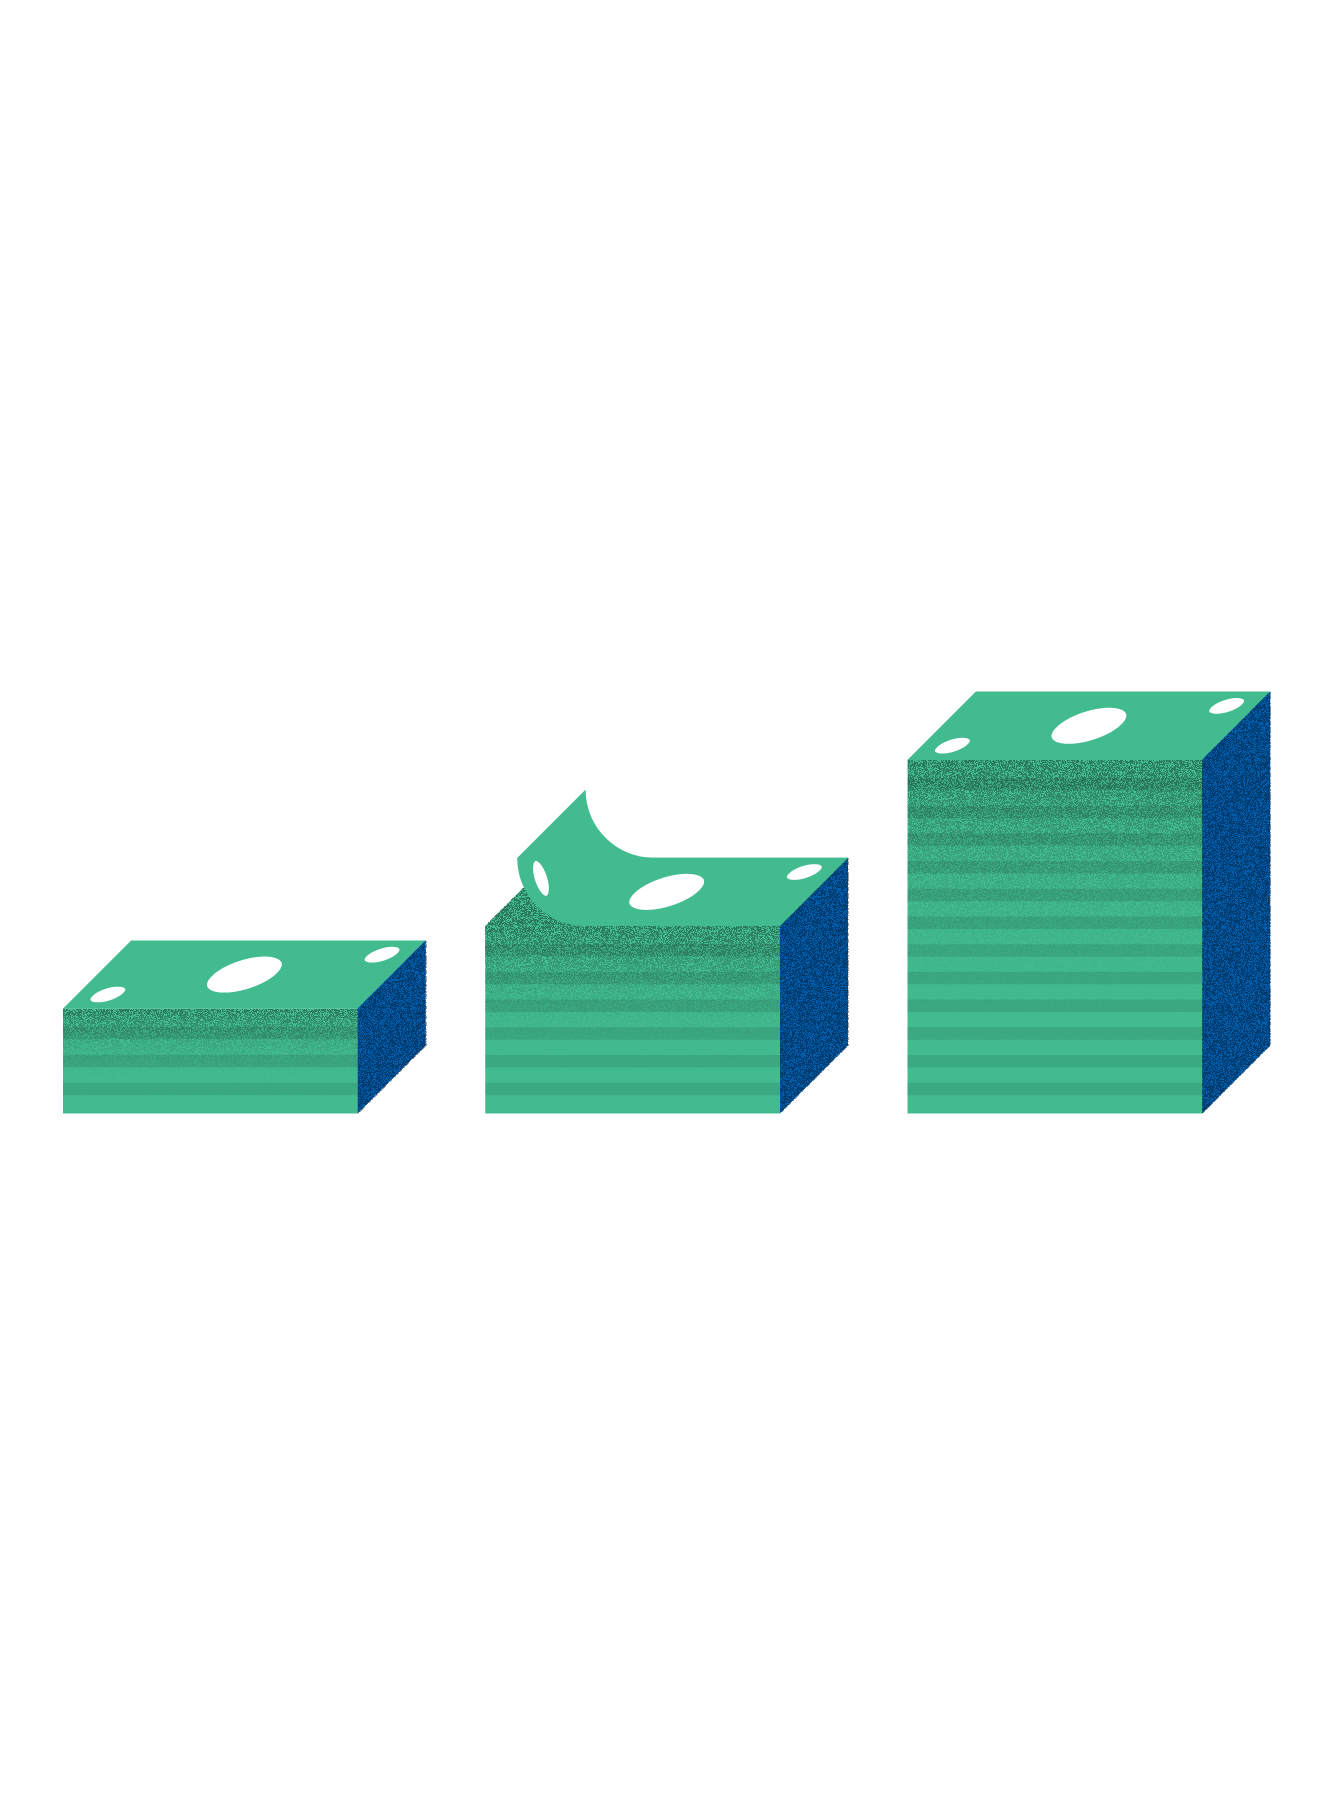 Illustration of stacks of money